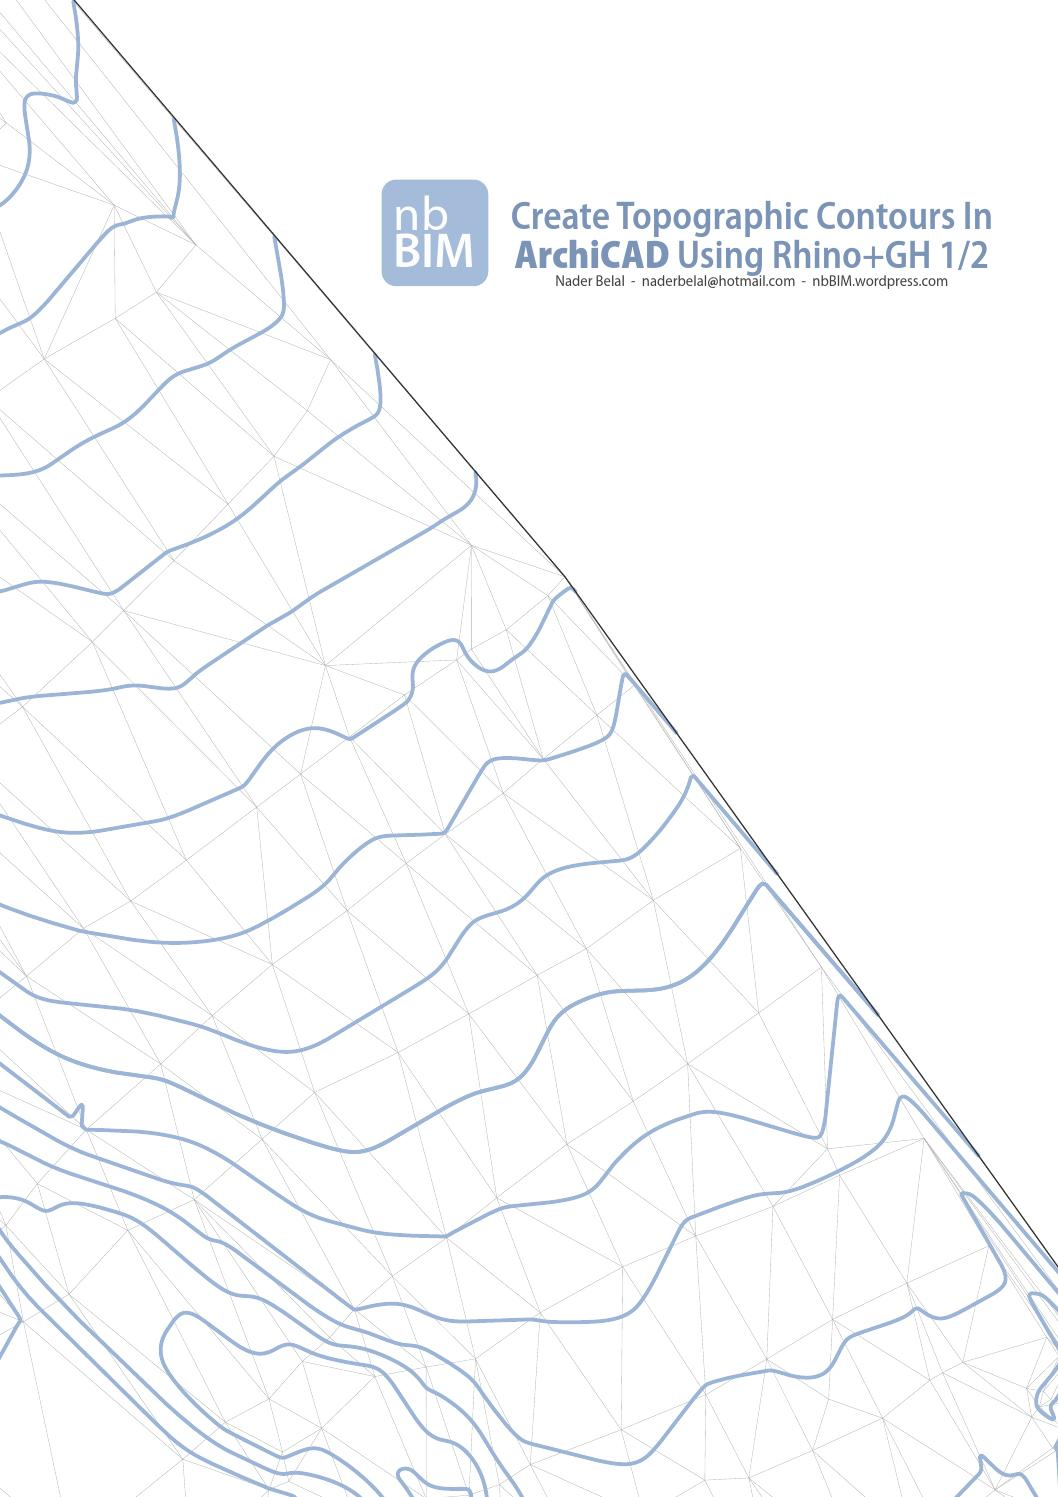 Create Topographic Contours In Archicad Using Rhino+Gh 1/2 by nbBIM